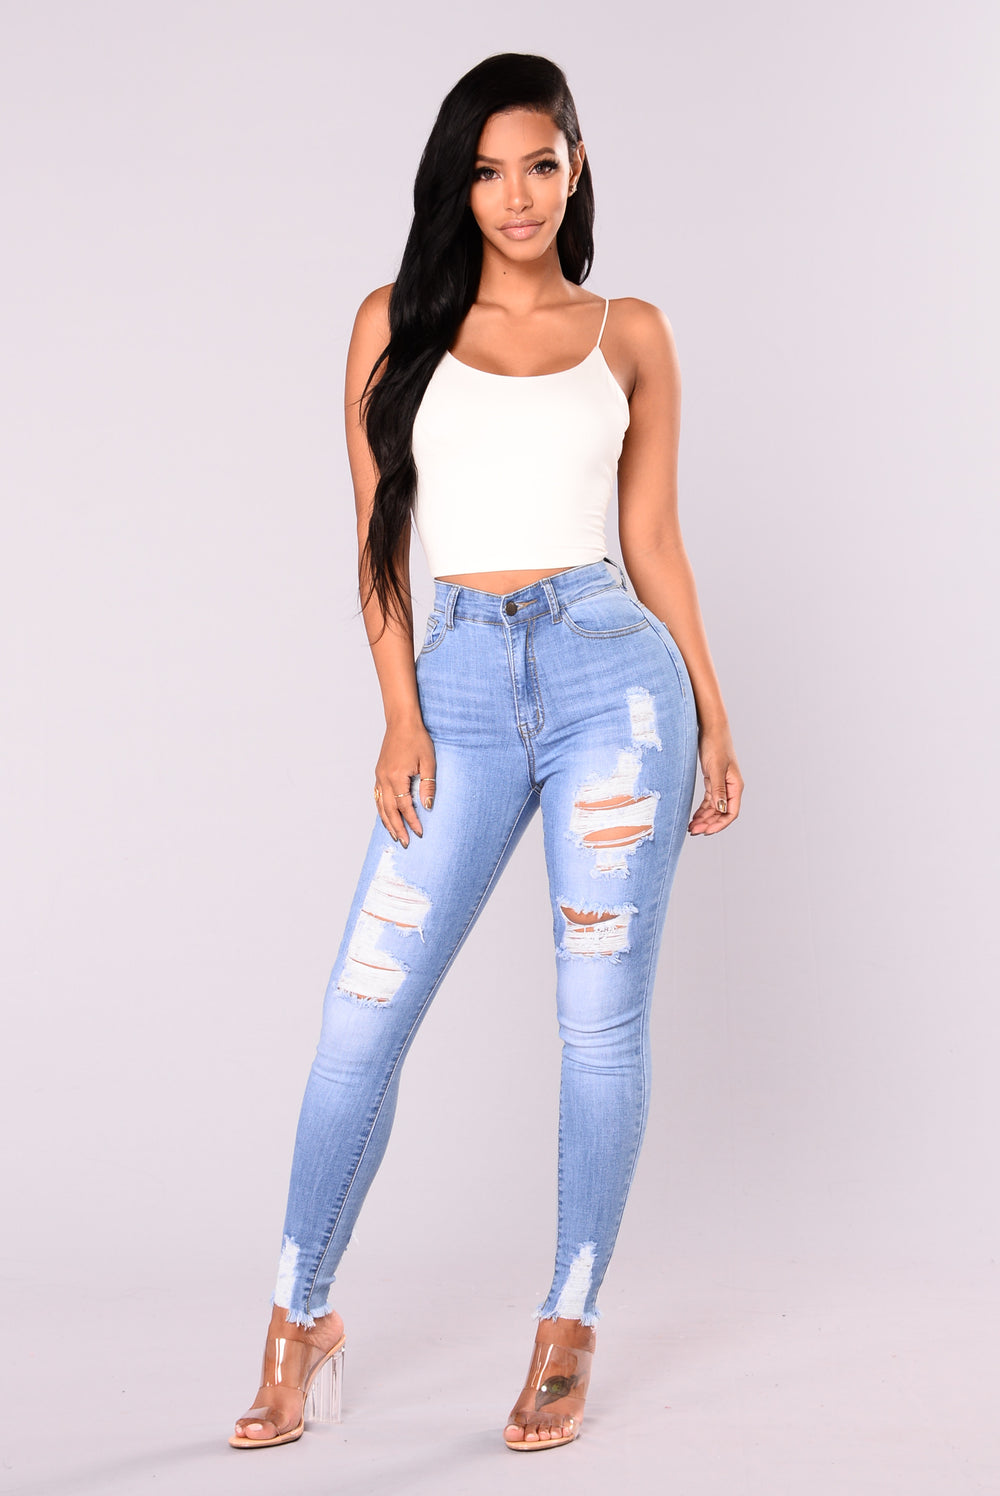 Alyse Distressed Jeans - Medium